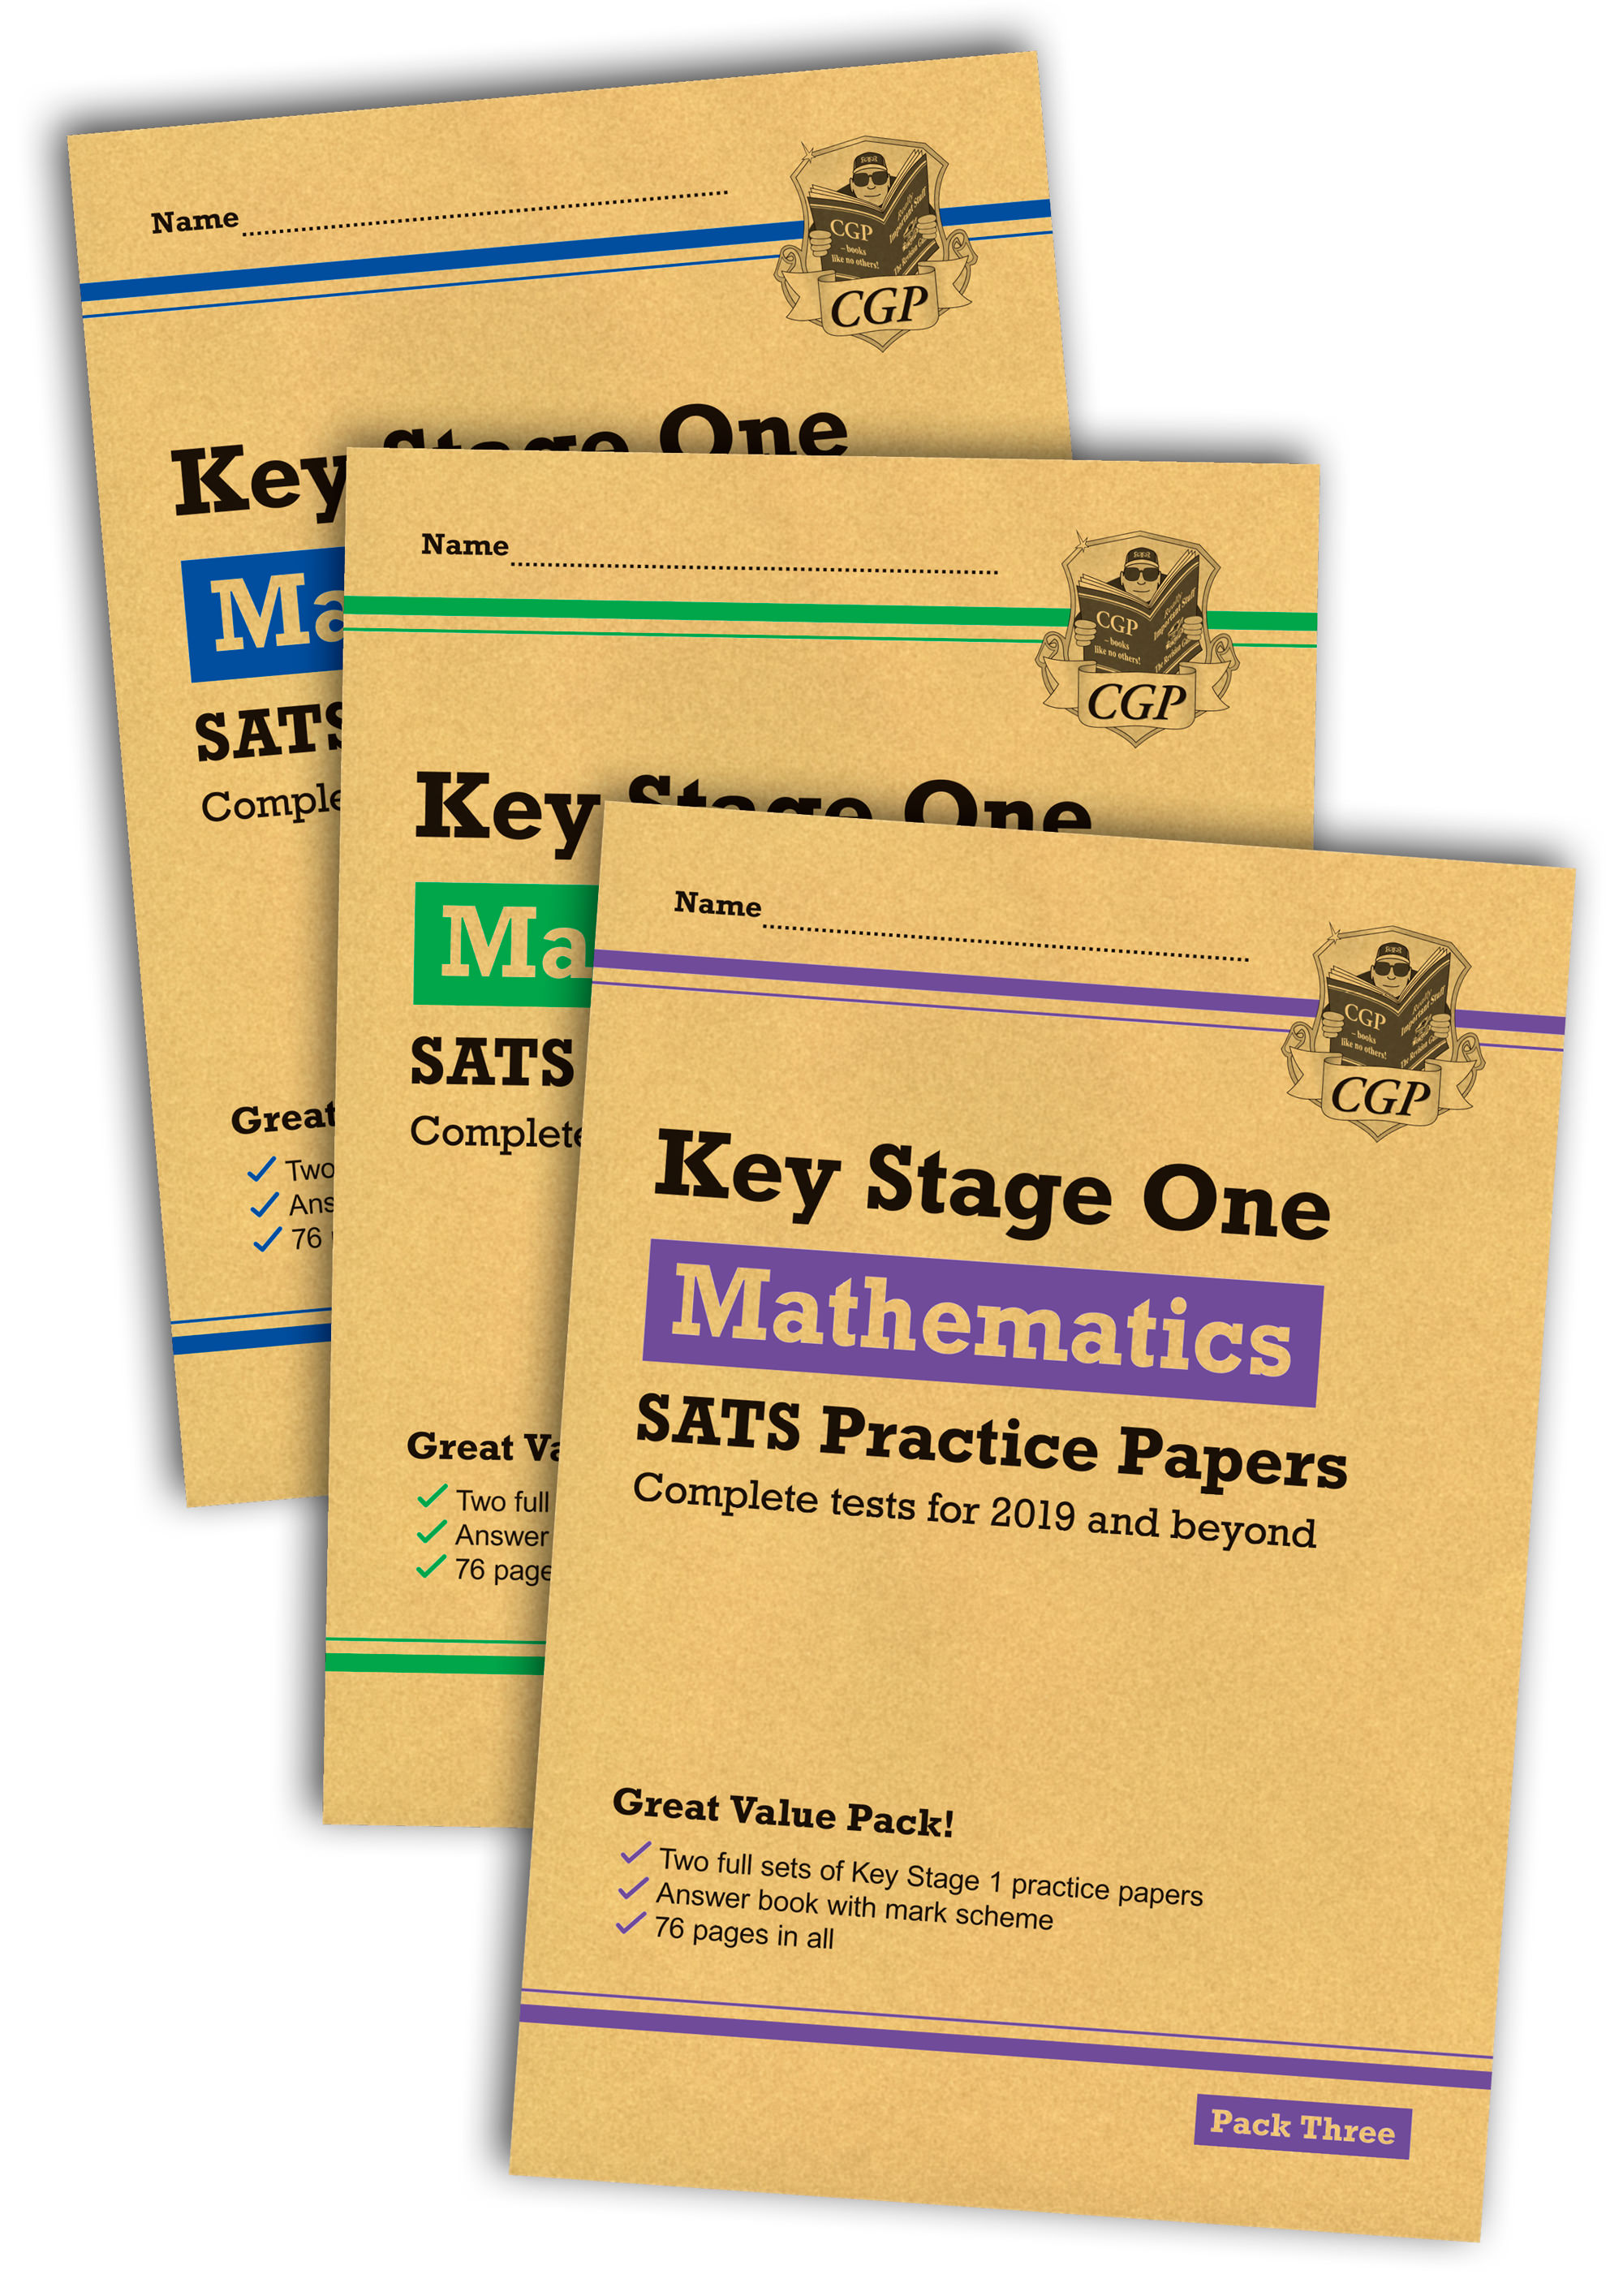 MHB3P13 - New KS1 Maths SATS Practice Paper Bundle: Packs 1, 2 & 3 (for the 2021 tests)